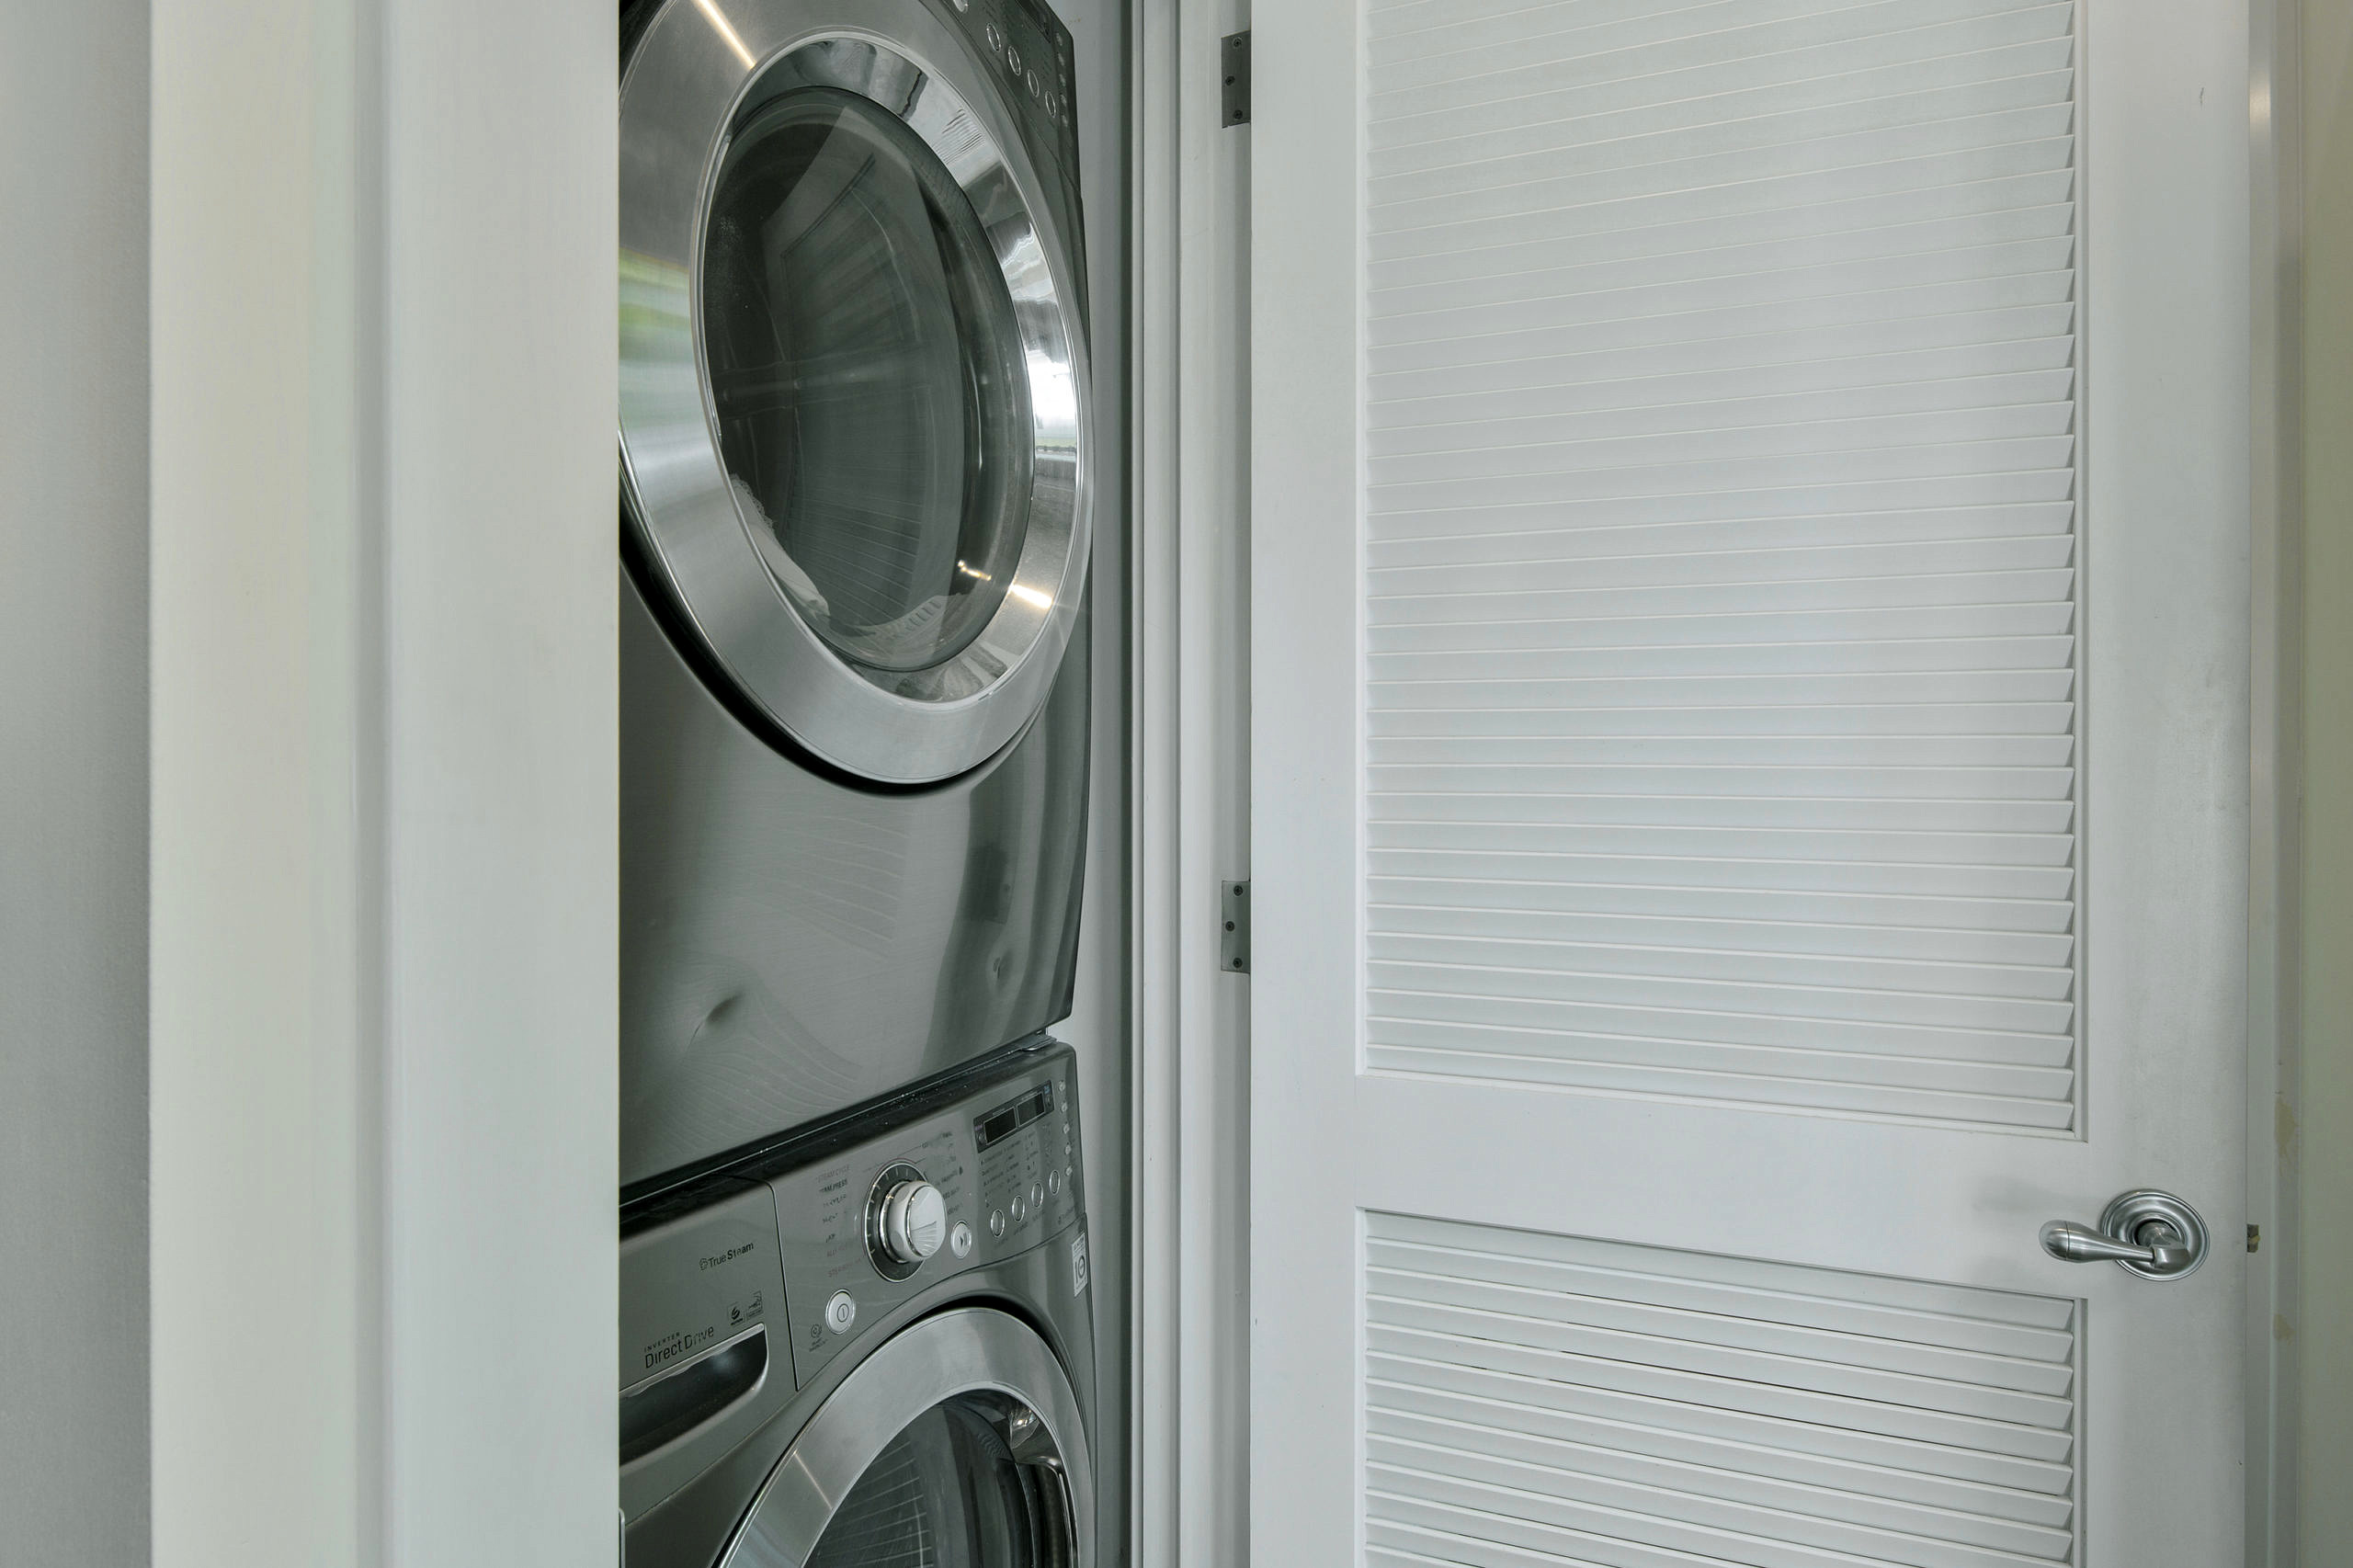 1416 White St, Key West_Washer-Dryer